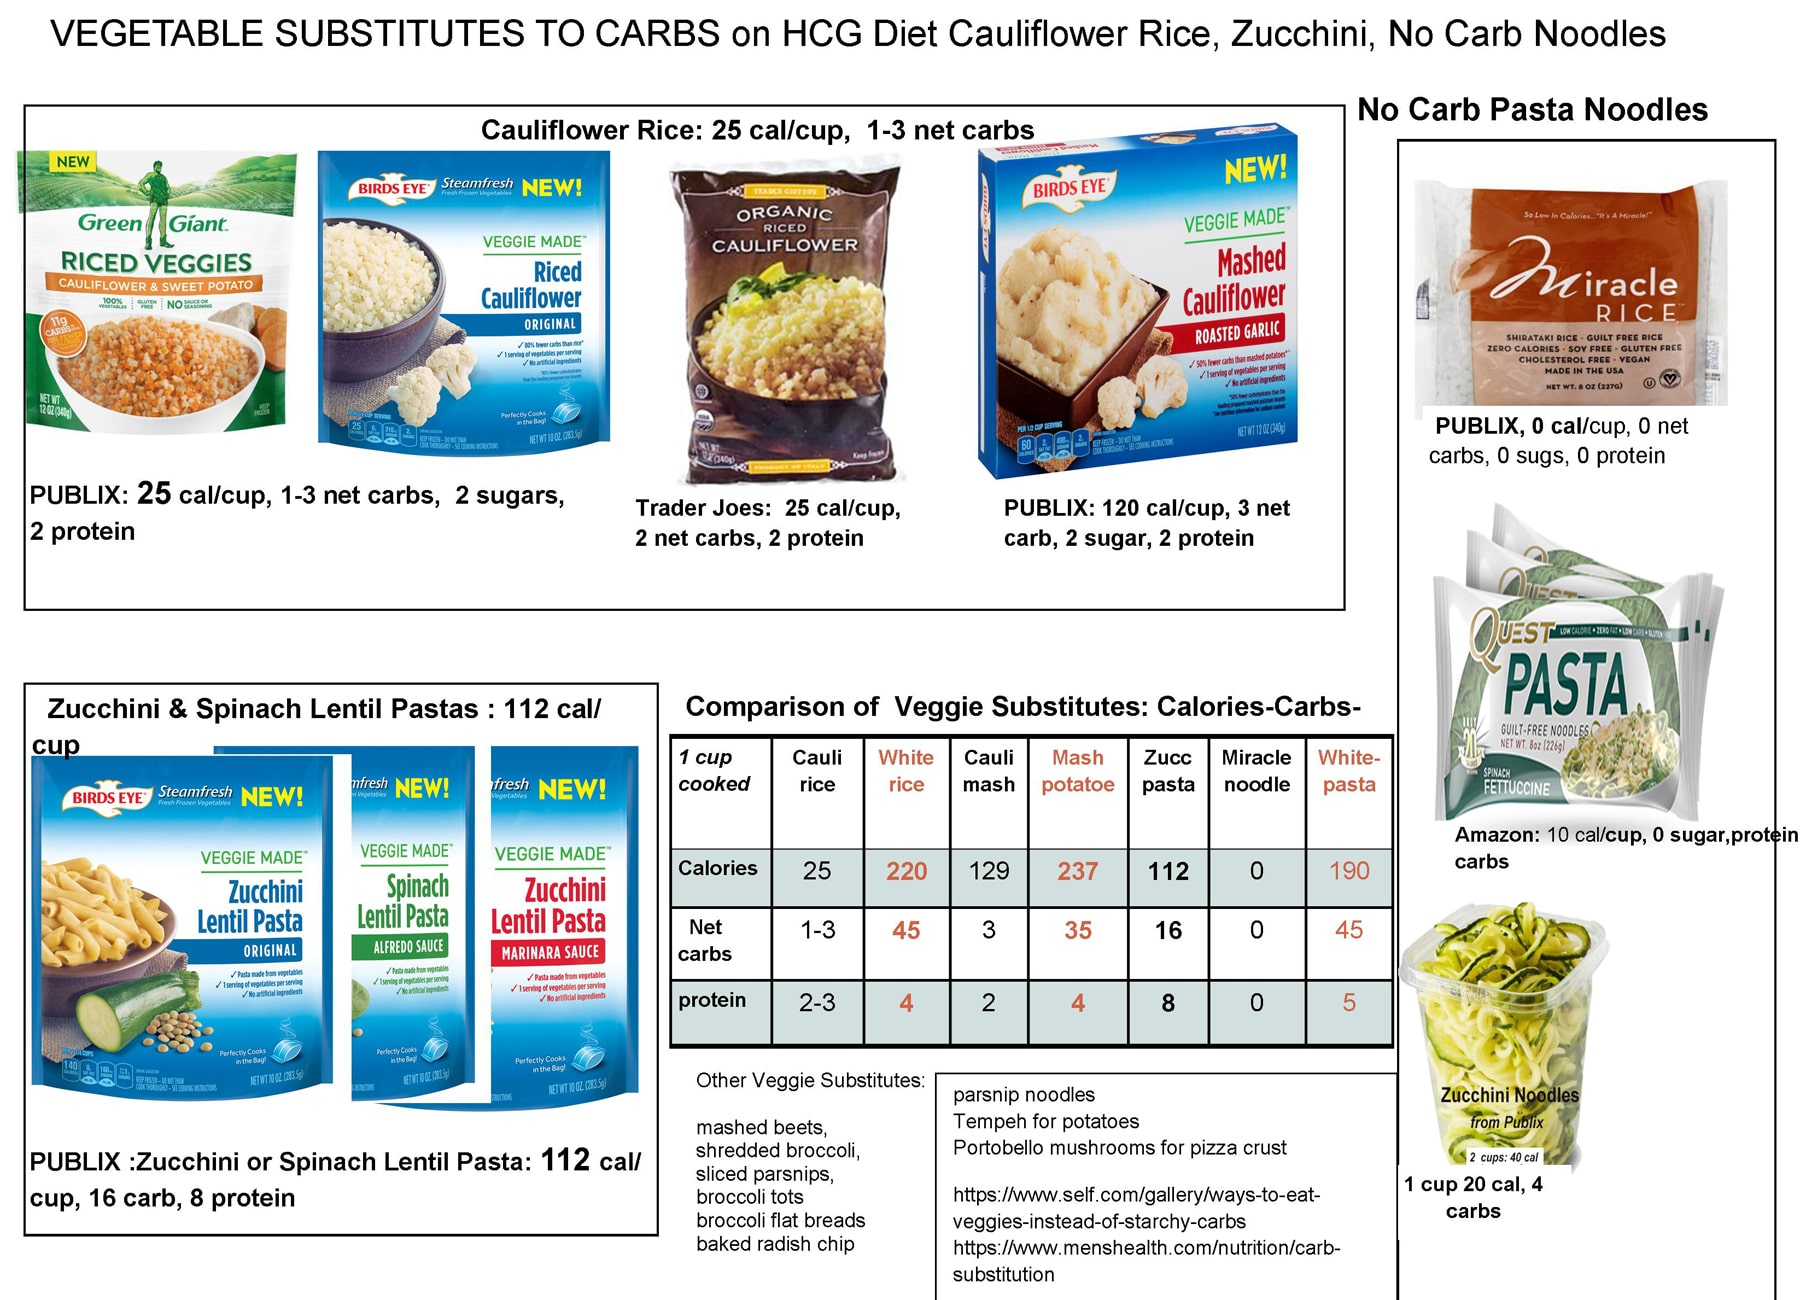 vegetable substitues for Carbs in HCG diet